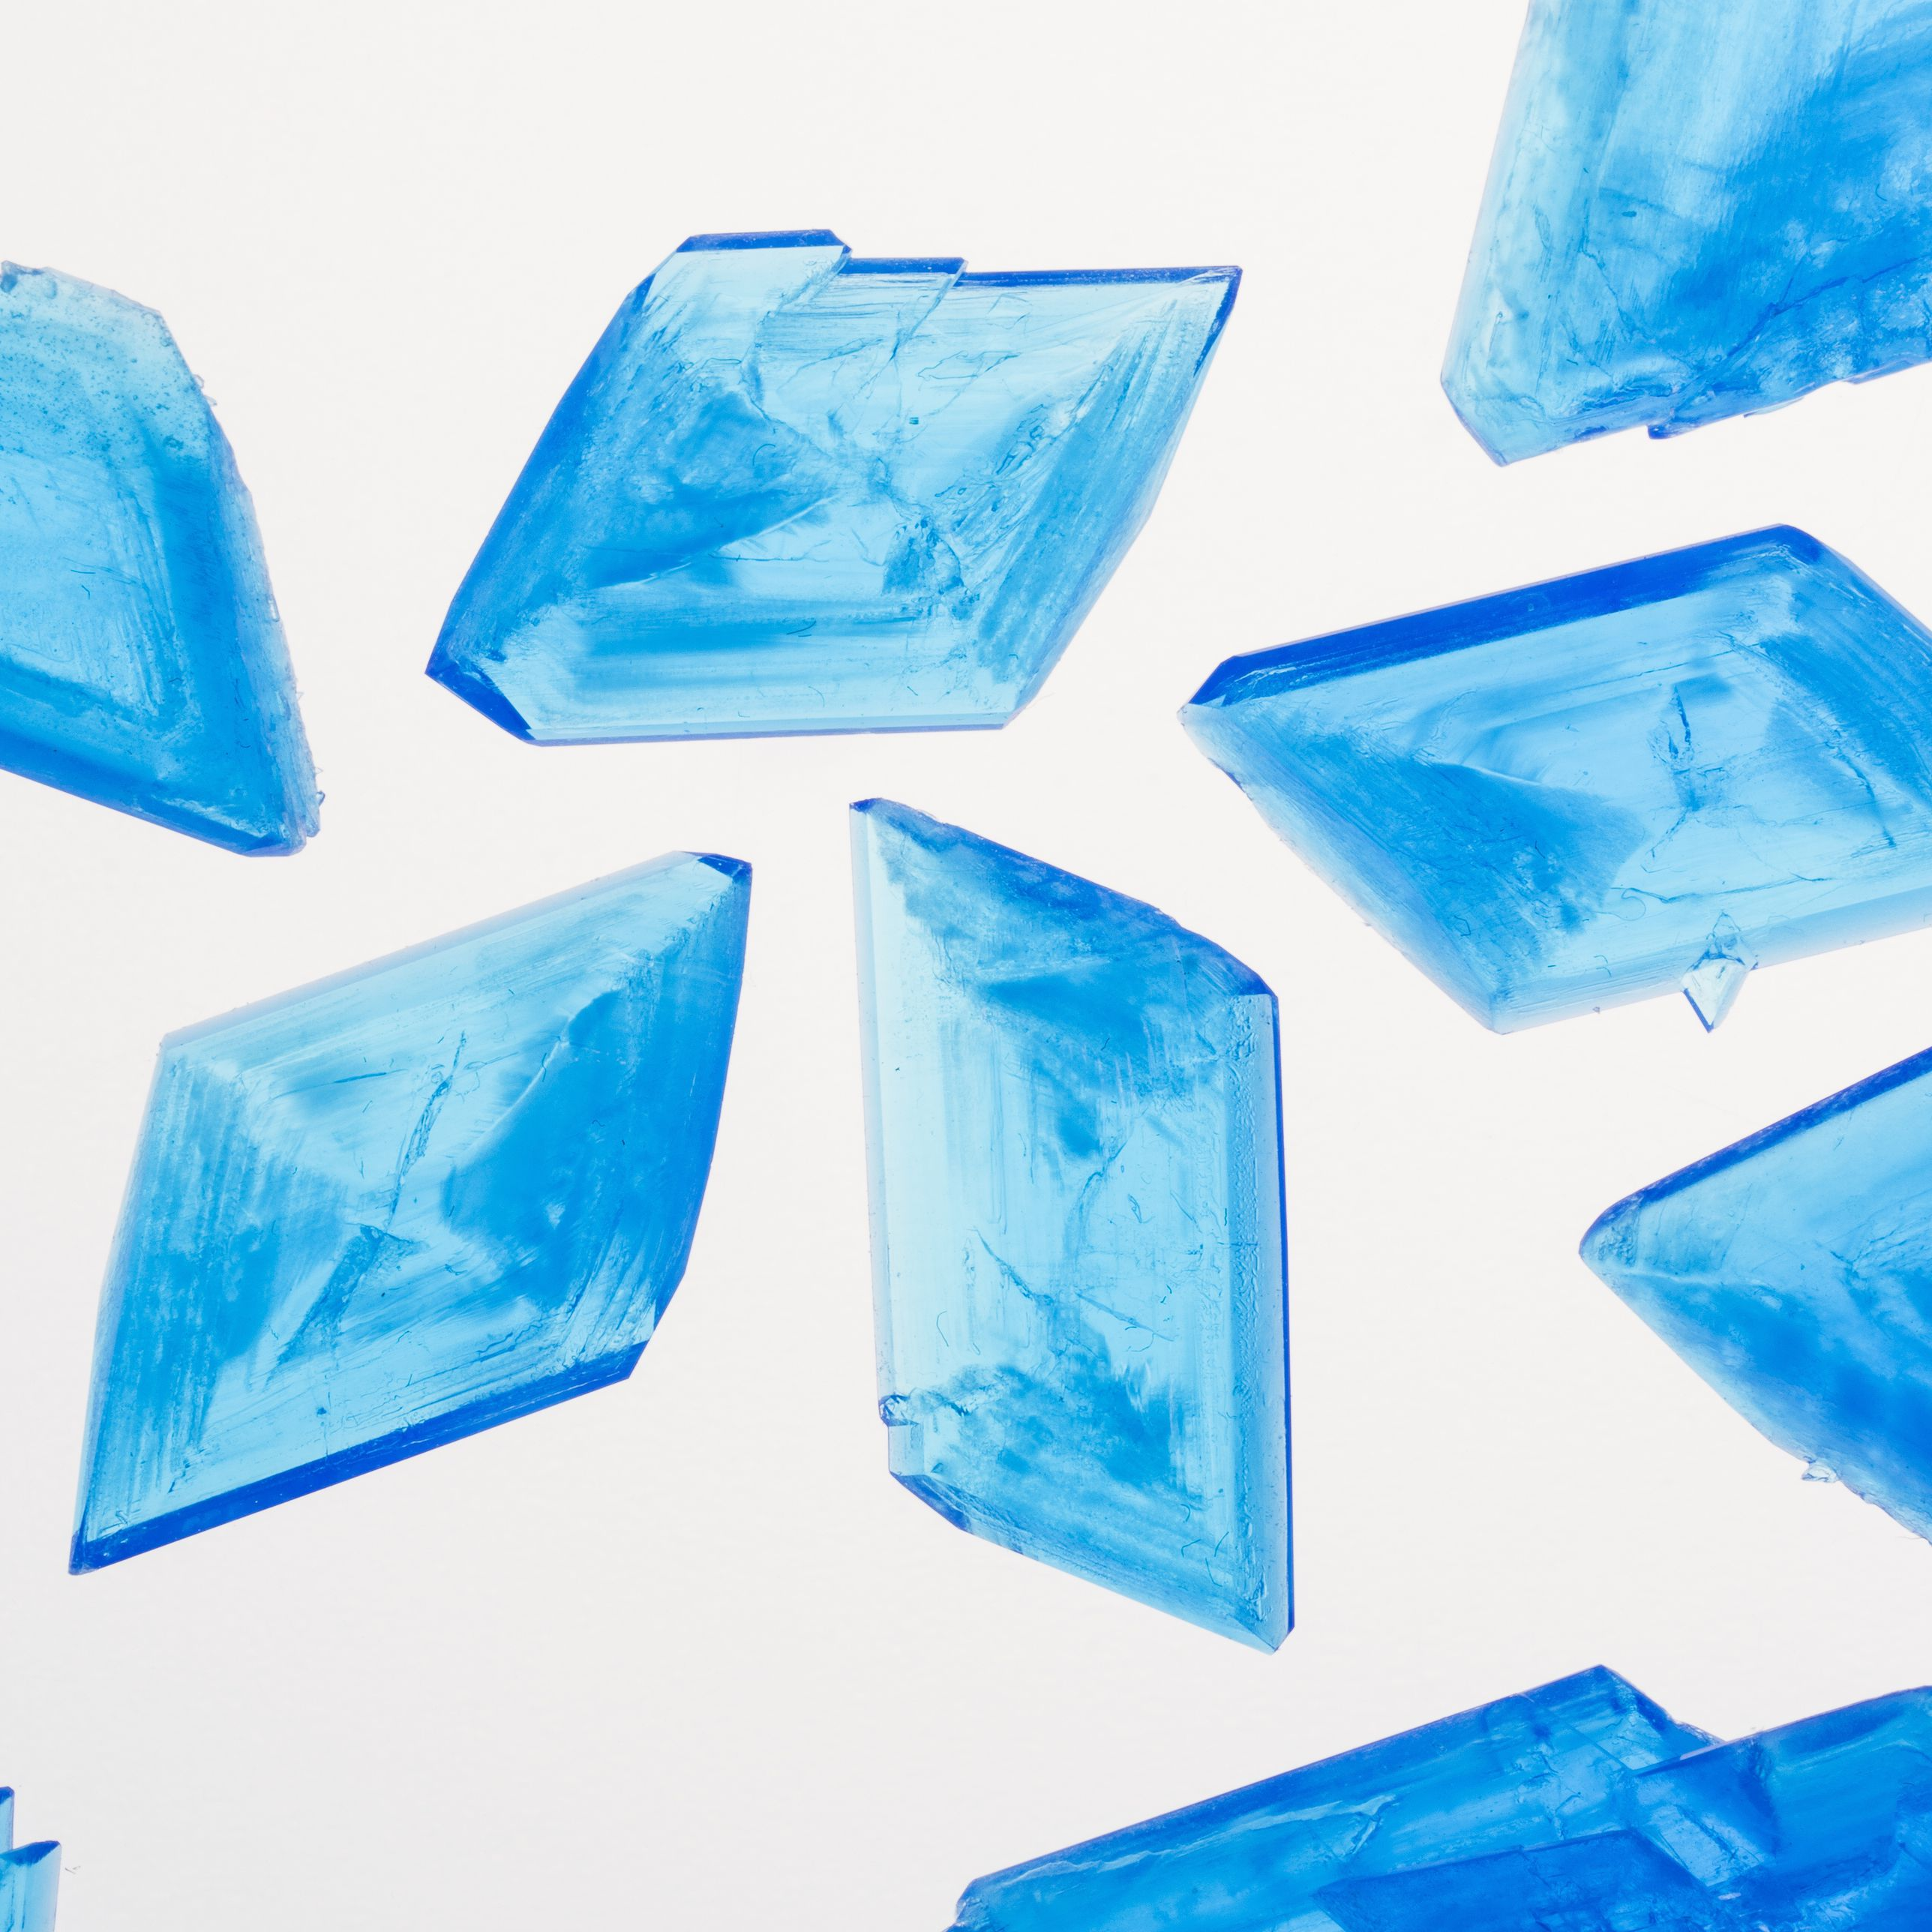 How to Grow Blue Copper Sulfate Crystals